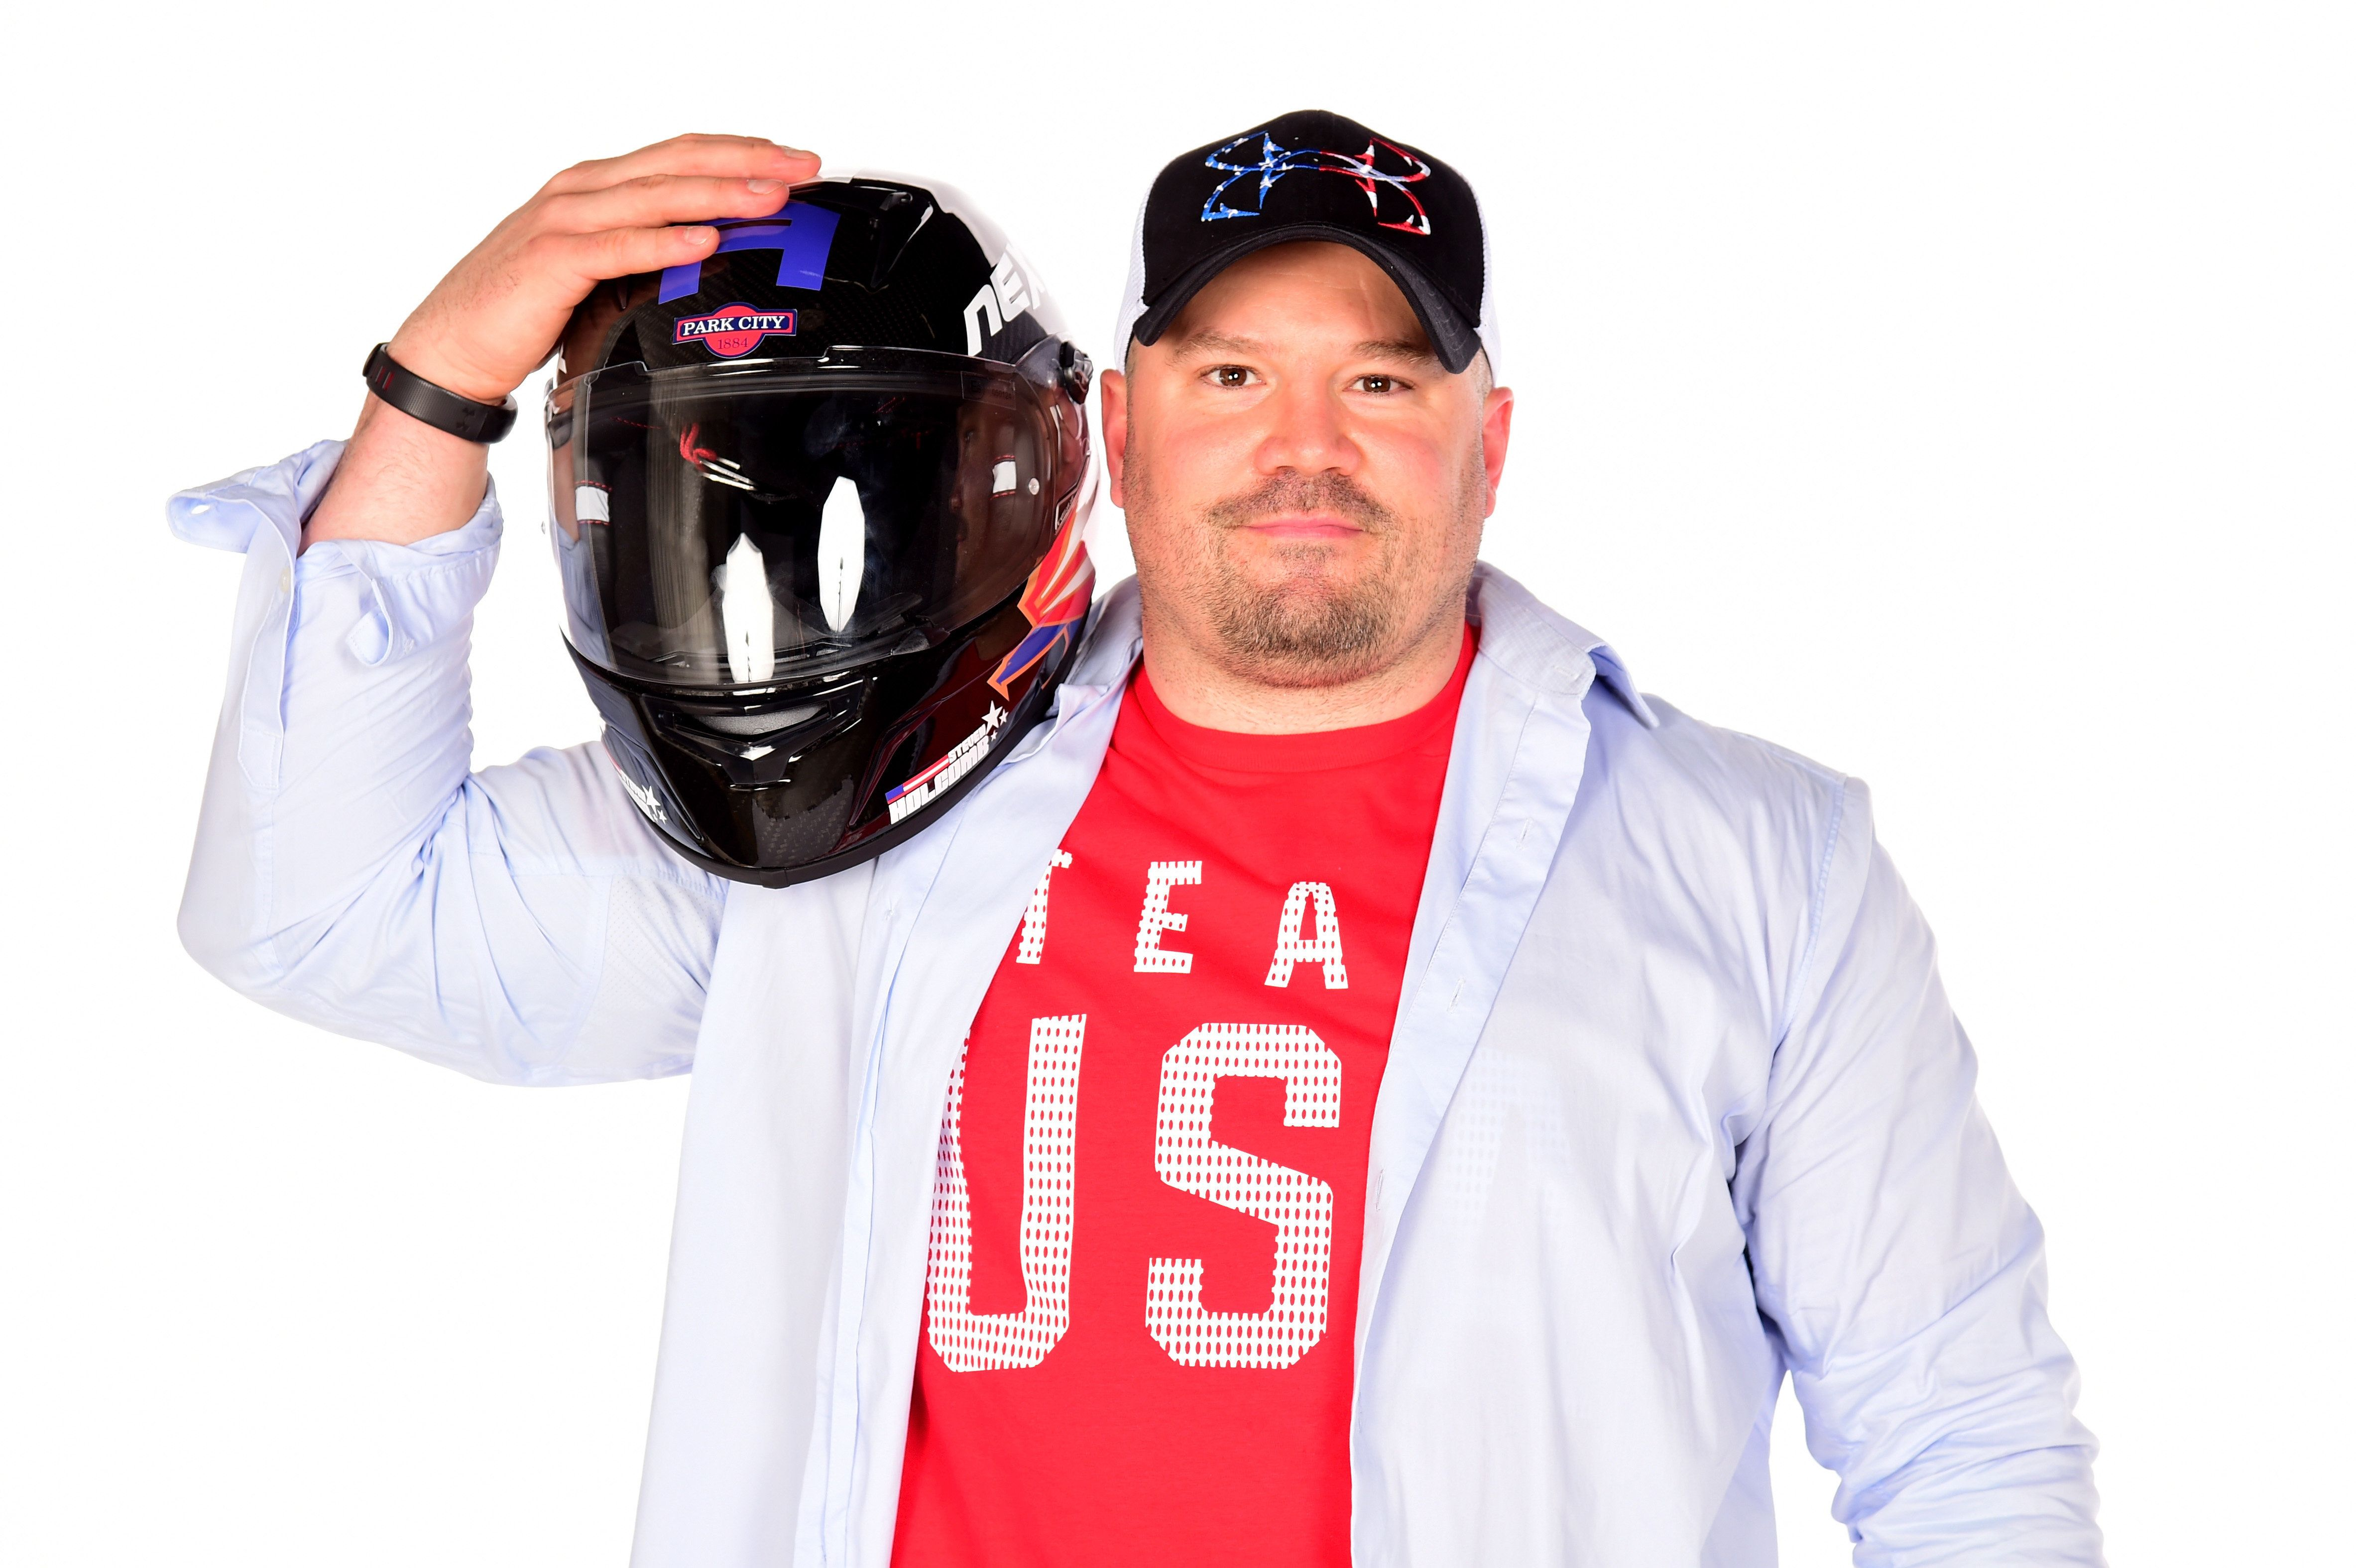 WEST HOLLYWOOD, CA - APRIL 27:  Bobsledder Steven Holcomb poses for a portrait during the Team USA PyeongChang 2018 Winter Olympics portraits on April 27, 2017 in West Hollywood, California.  (Photo by Harry How/Getty Images)